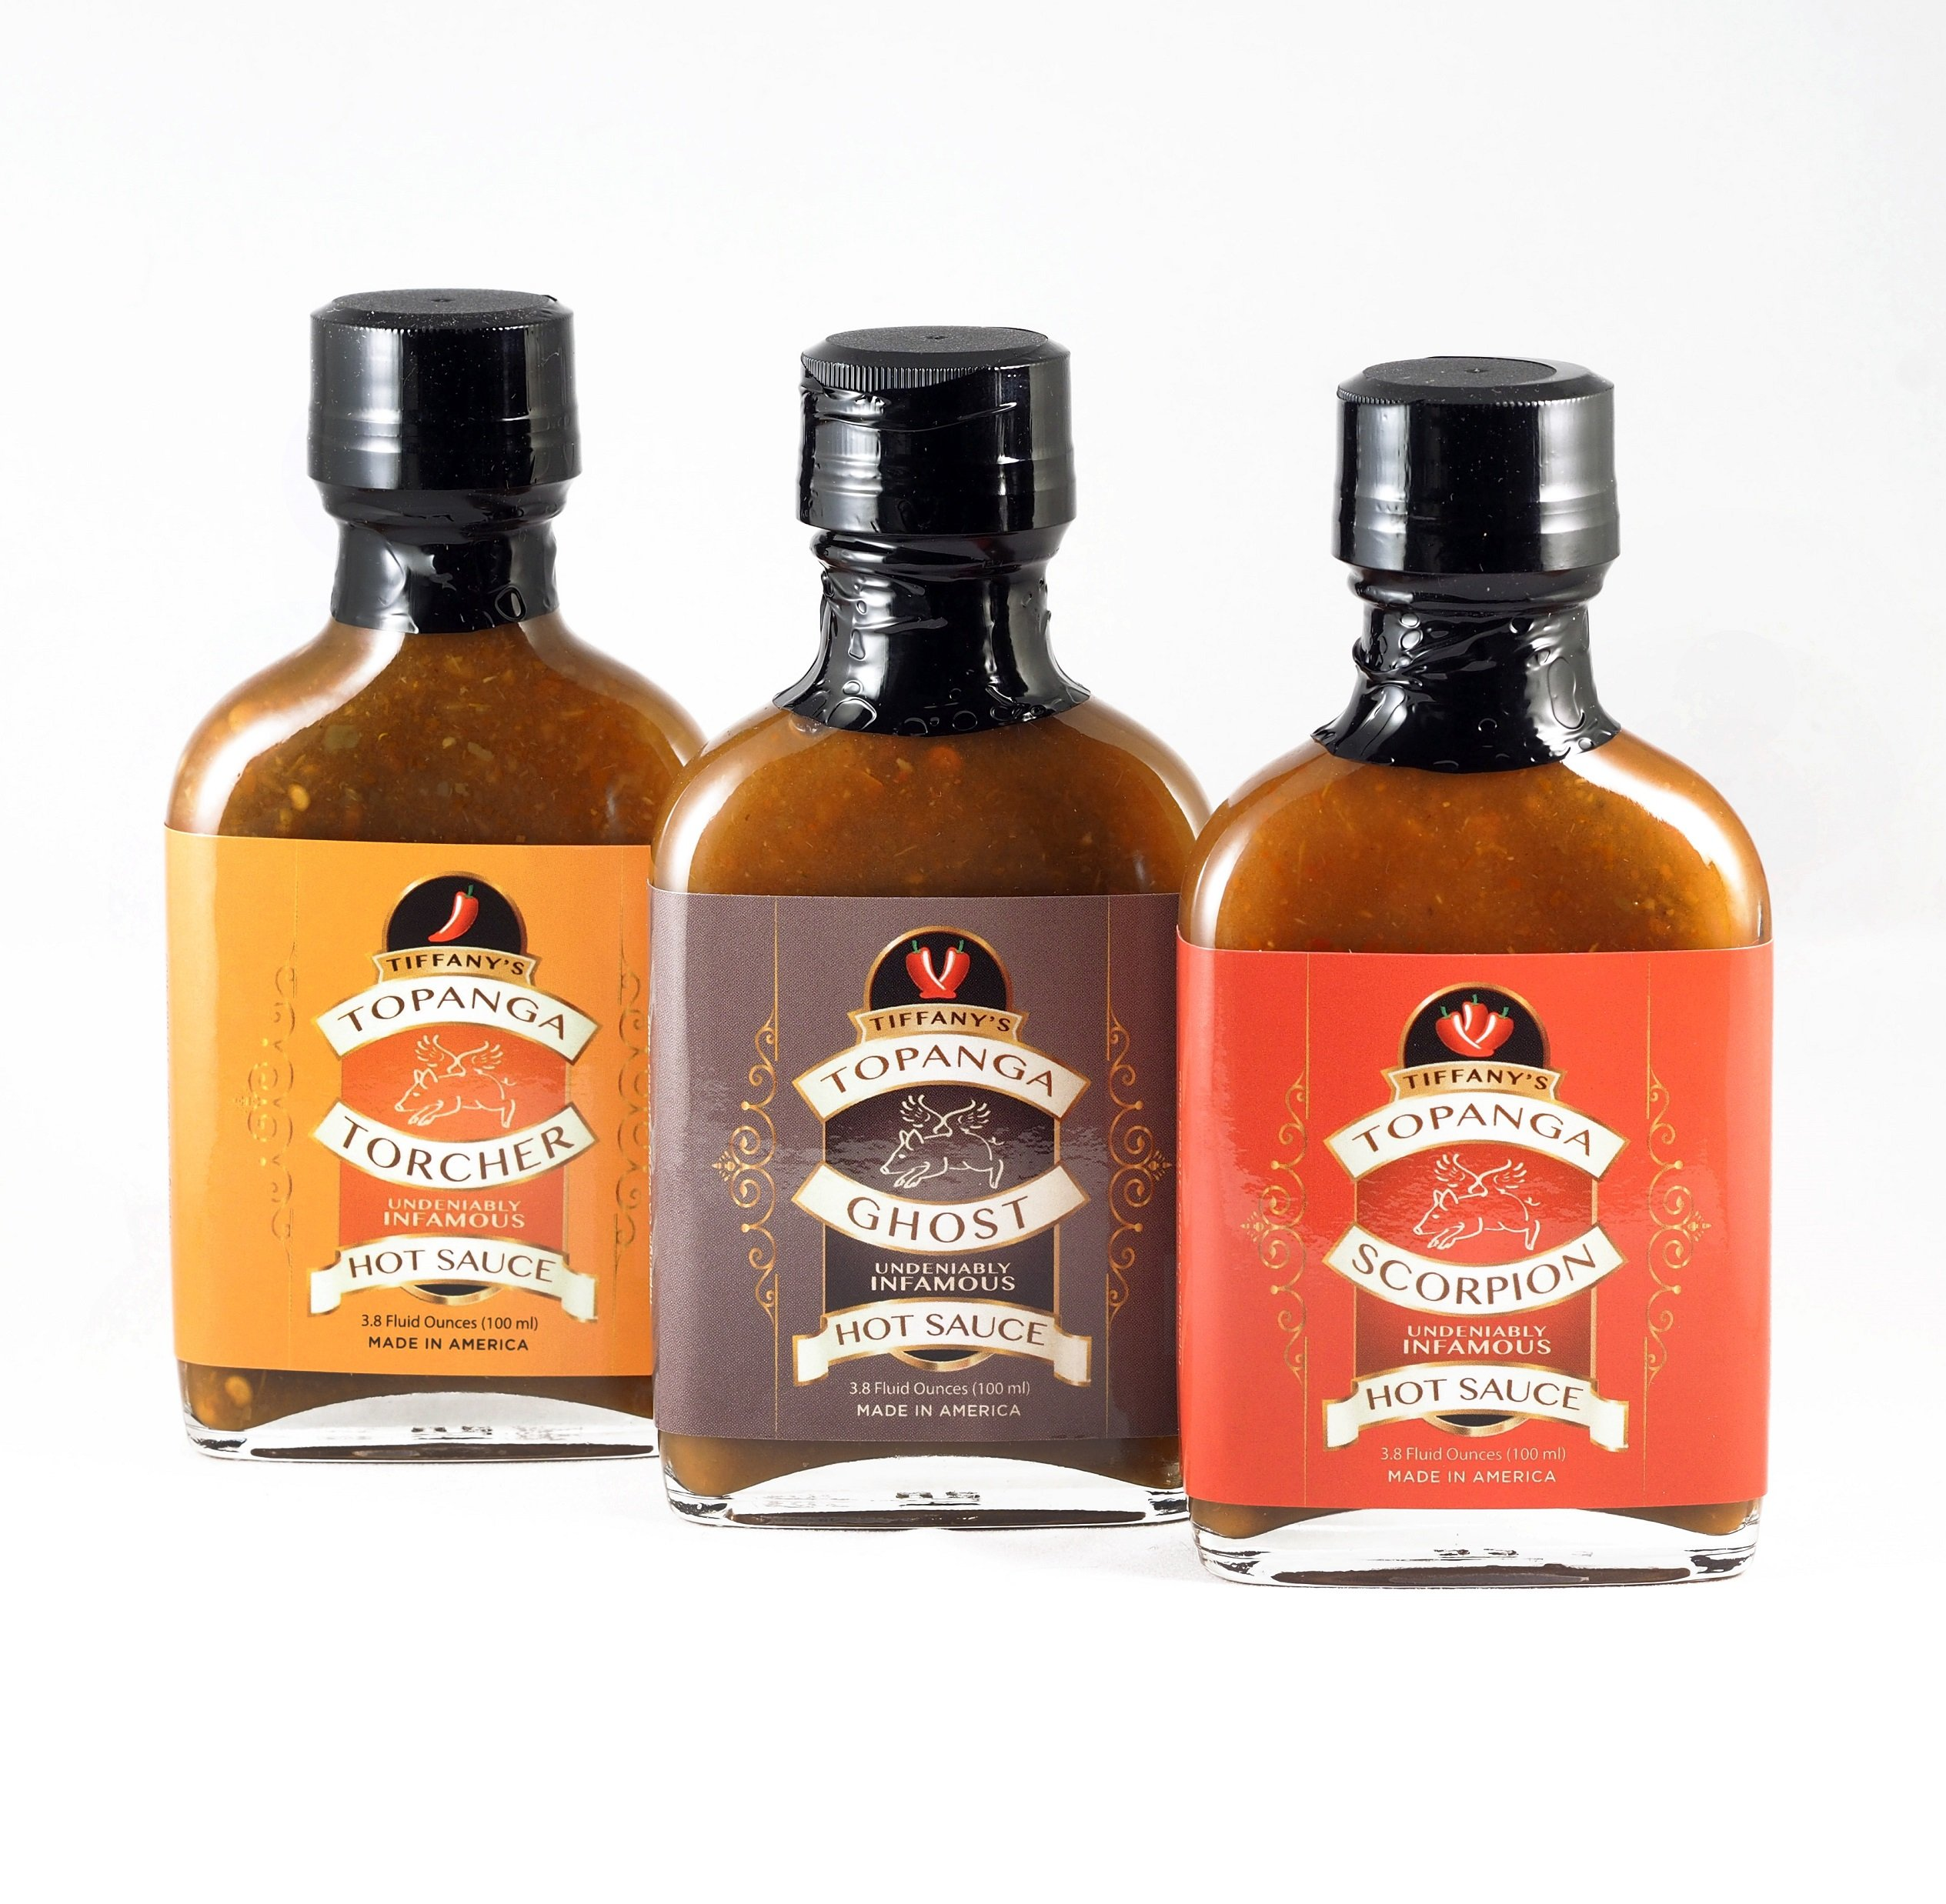 Tiffany's Torcher Hot Sauce Three Pack Variety Gift Set. A Gourmet Sampler Collection of Seriously Flavorful Selections using Fresh, Natural Habanero, Ghost, Scorpion, Serrano and Thai Peppers.